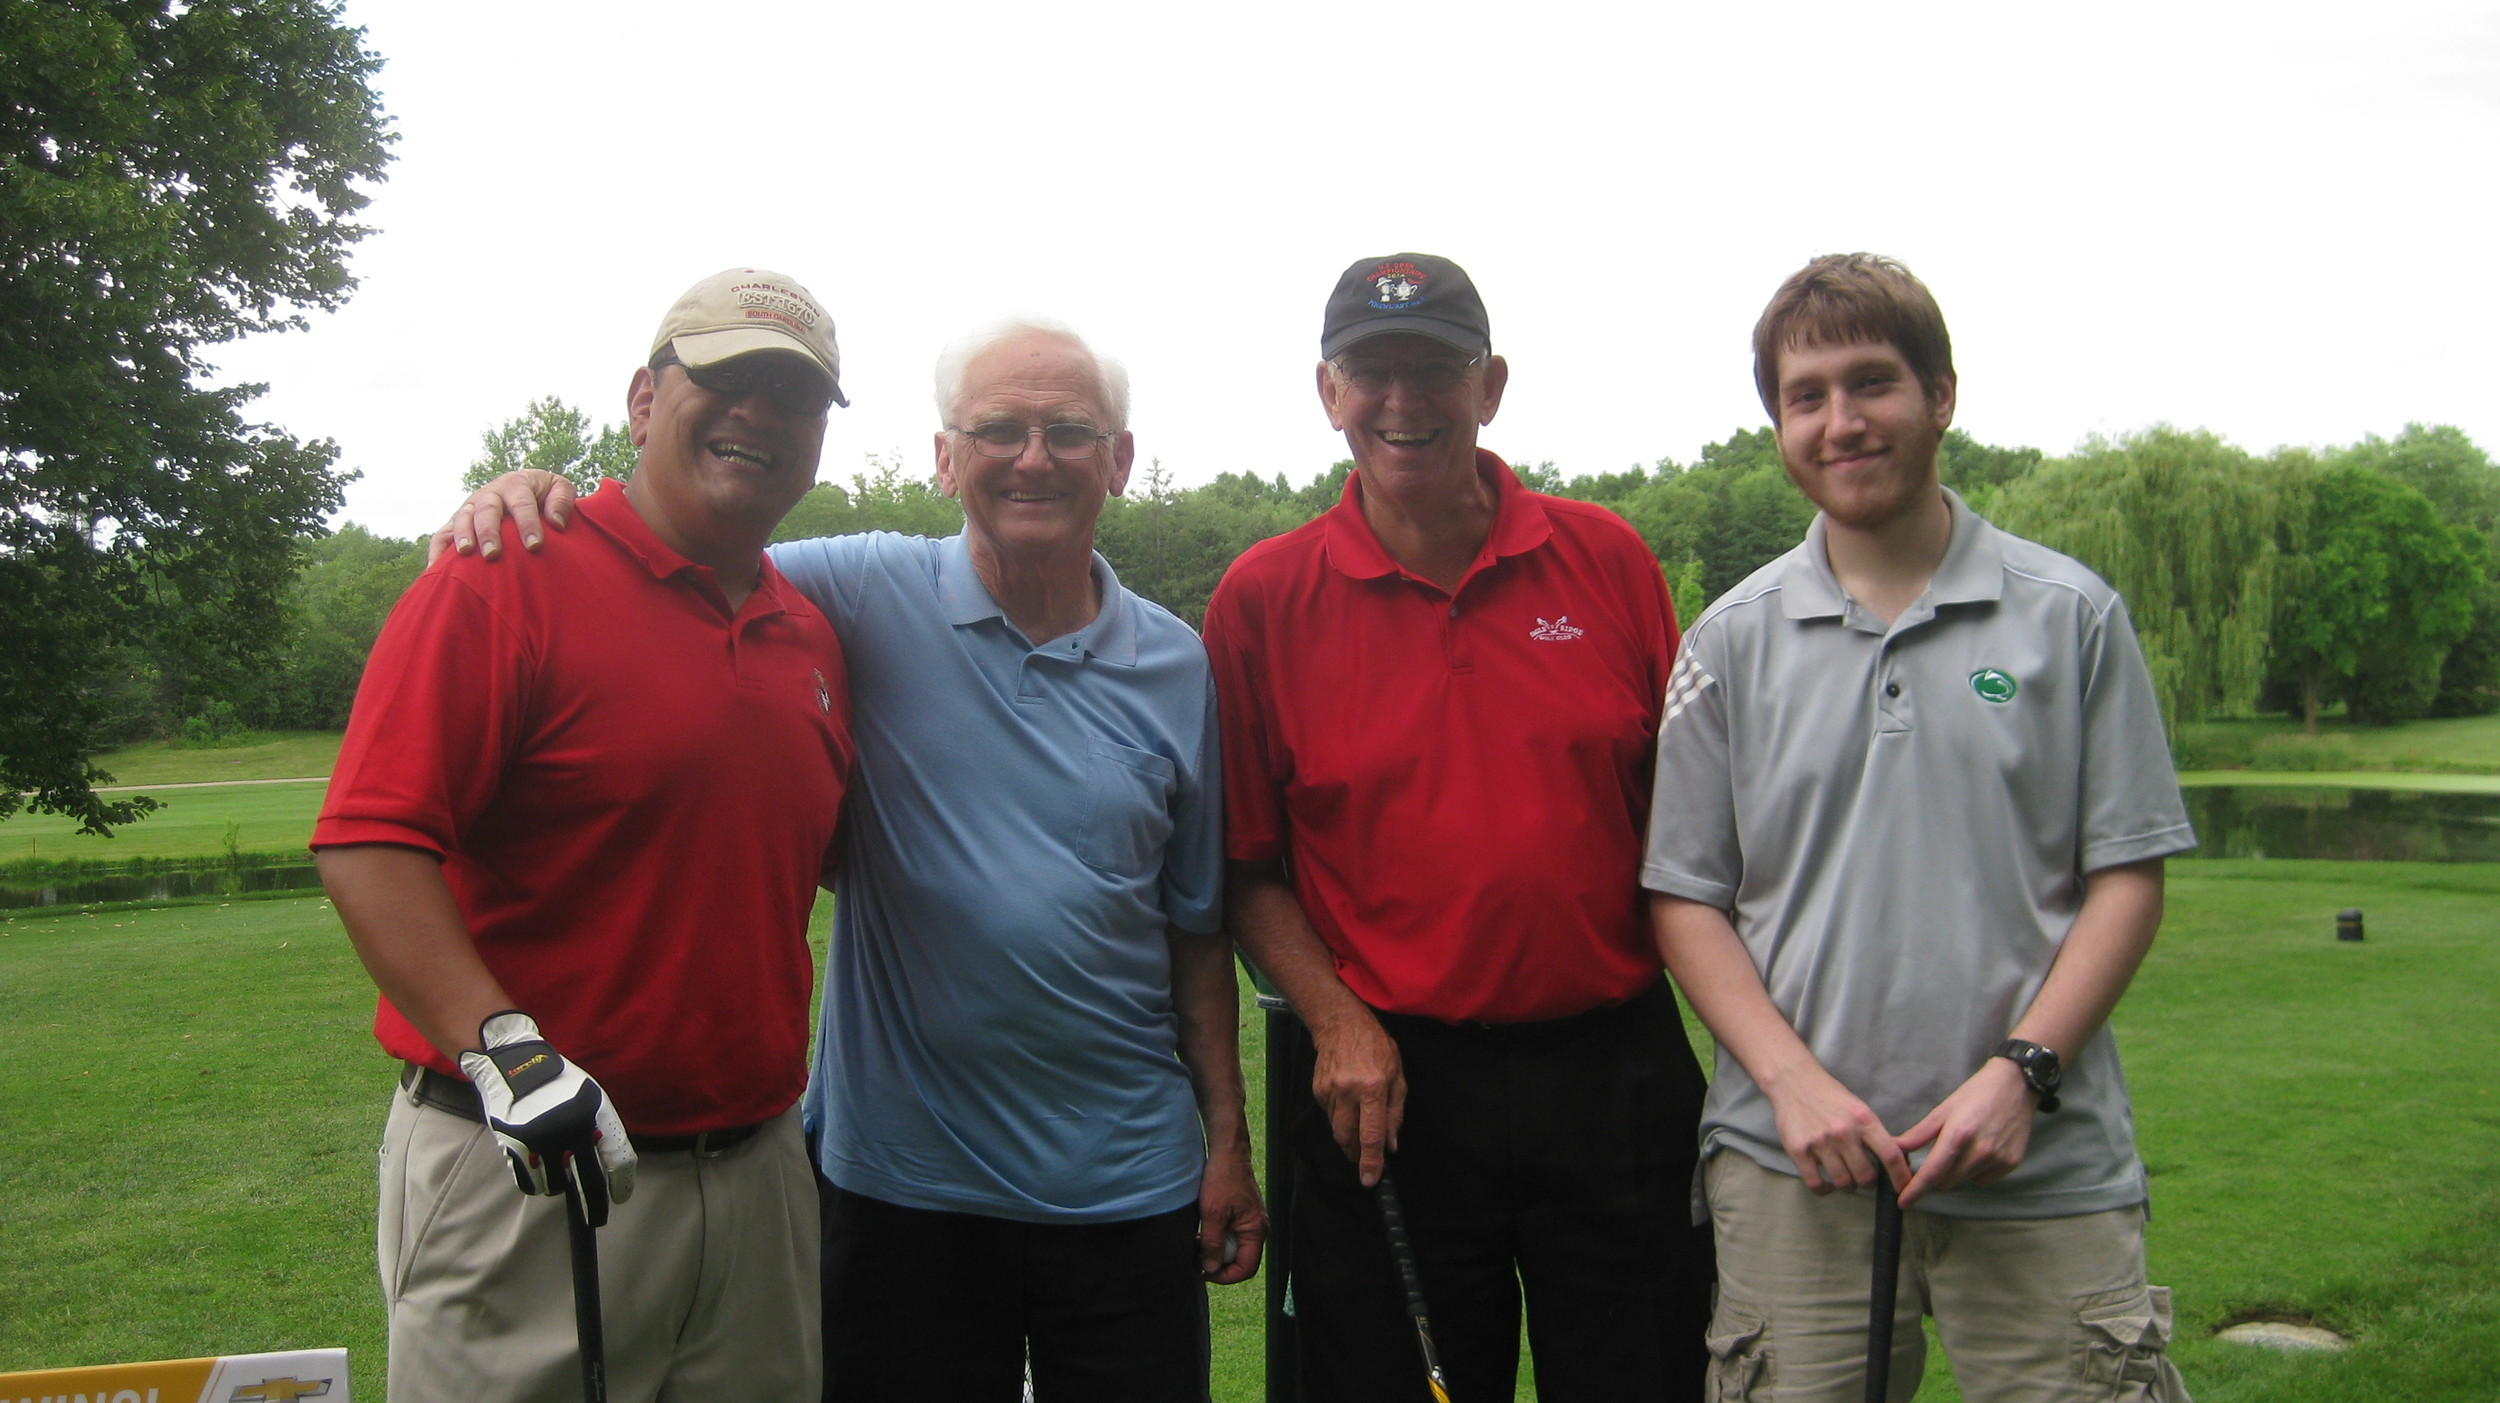 John, Dick, Dick and Joe - a talented golf foursome